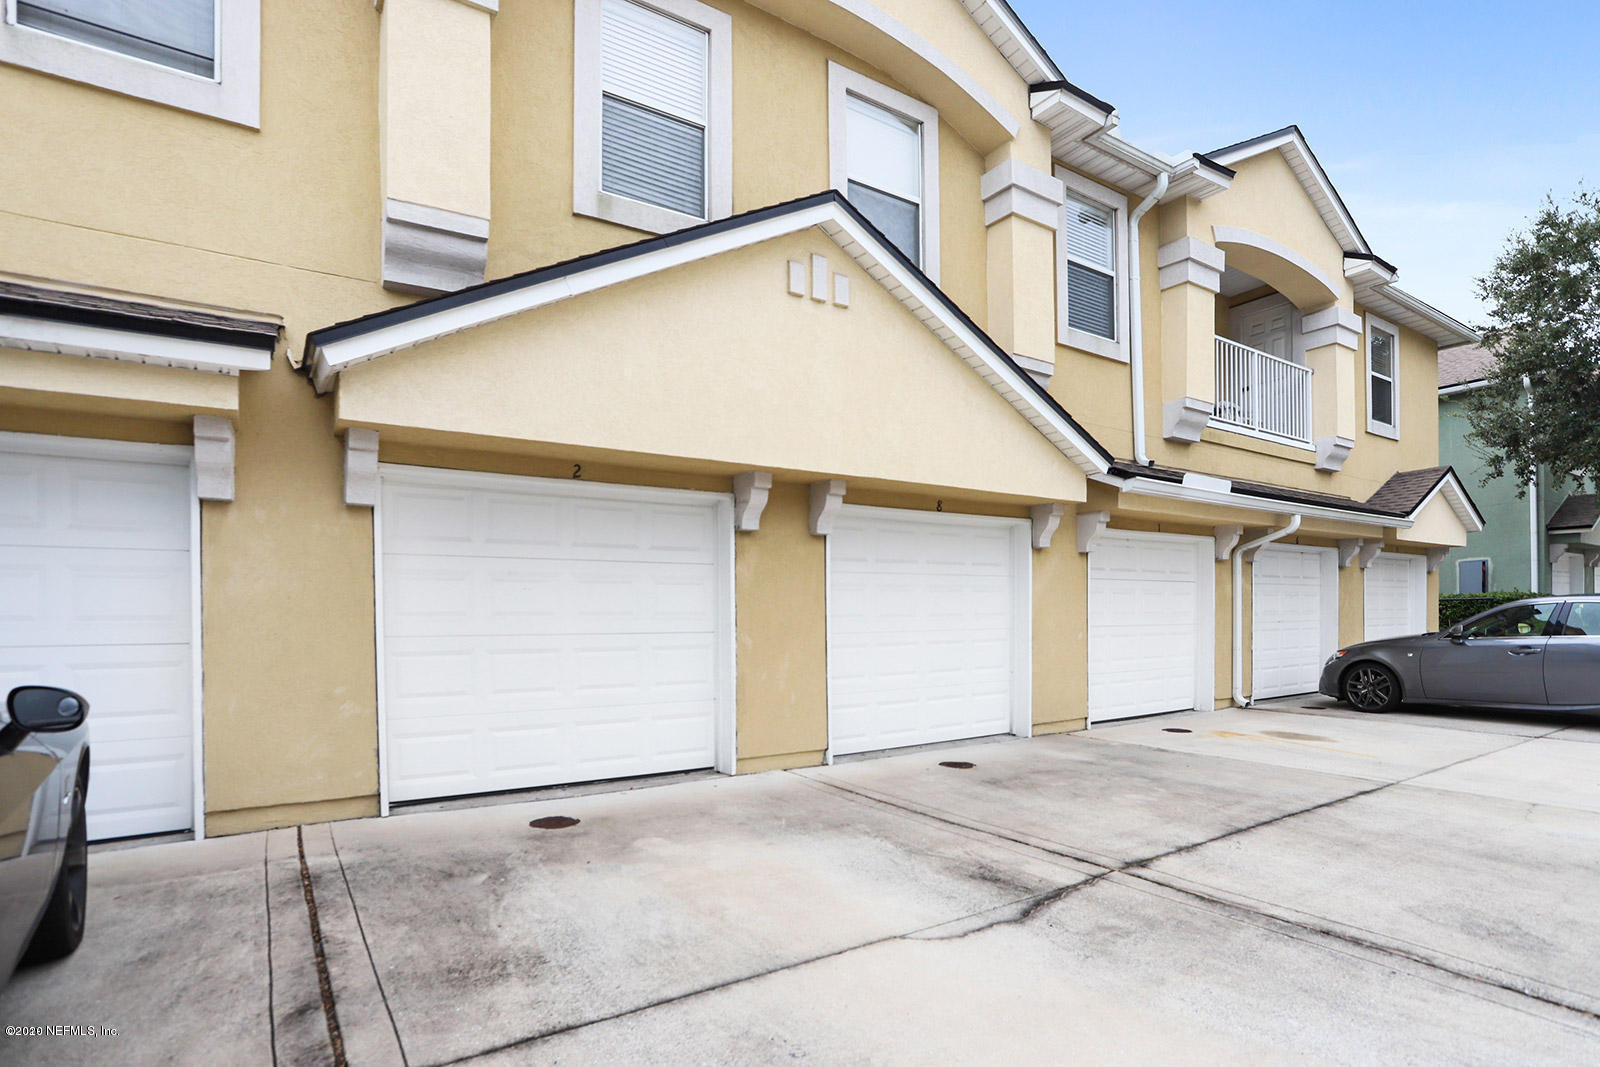 13816 HERONS LANDING, JACKSONVILLE, FLORIDA 32224, 3 Bedrooms Bedrooms, ,2 BathroomsBathrooms,Residential,For sale,HERONS LANDING,1082850